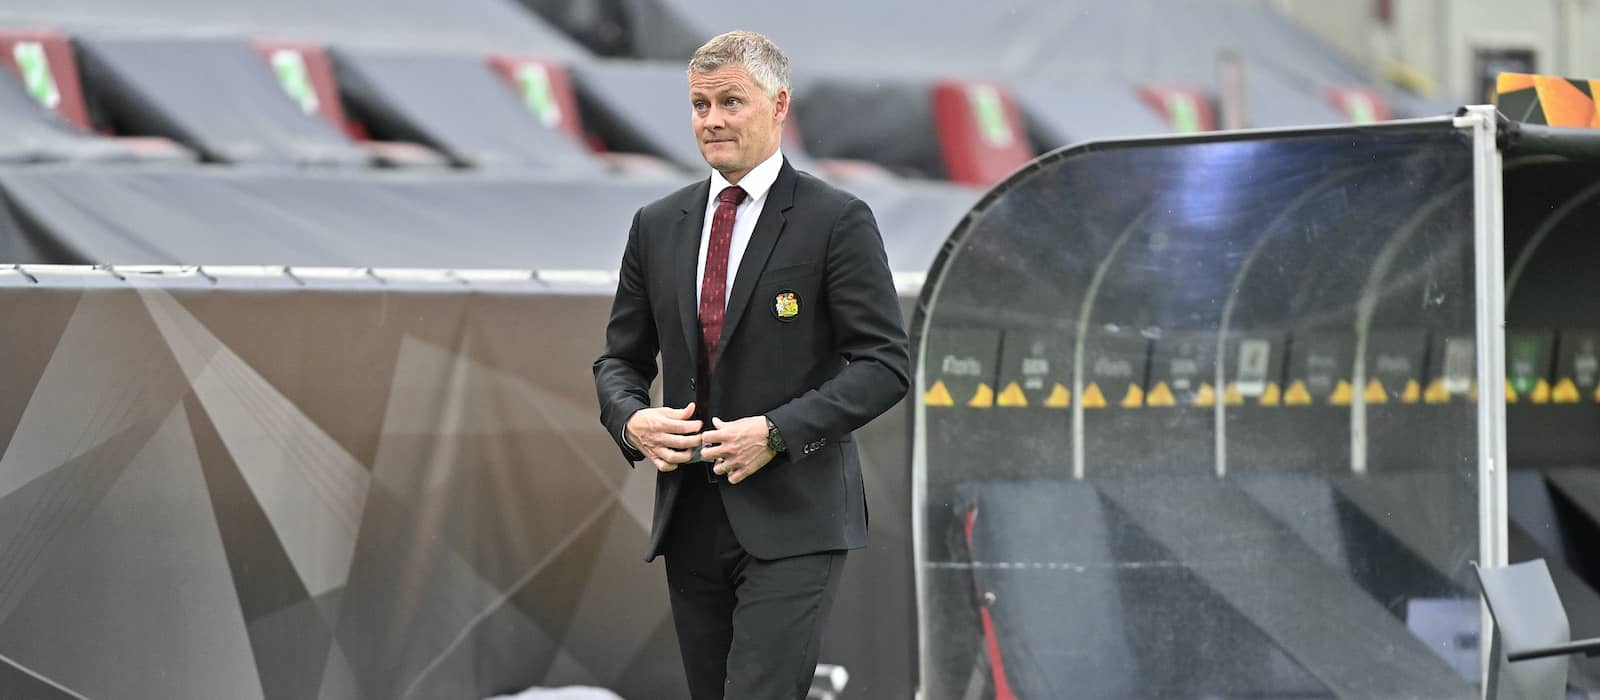 Ole Gunnar Solskjaer discusses Manchester United's summer targets